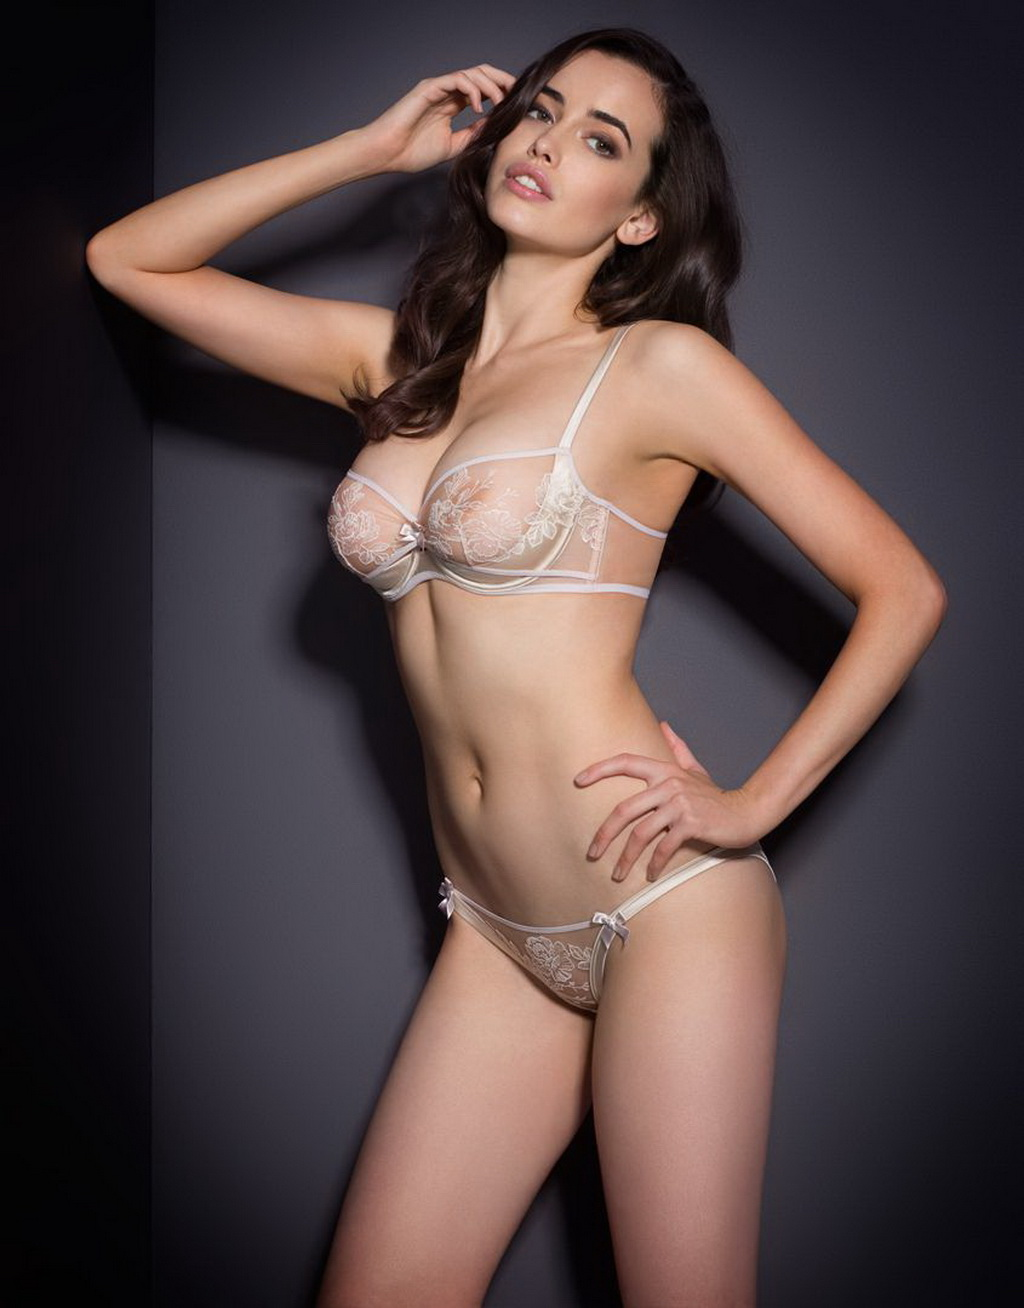 sarah stephens wearing white see through lingerie for